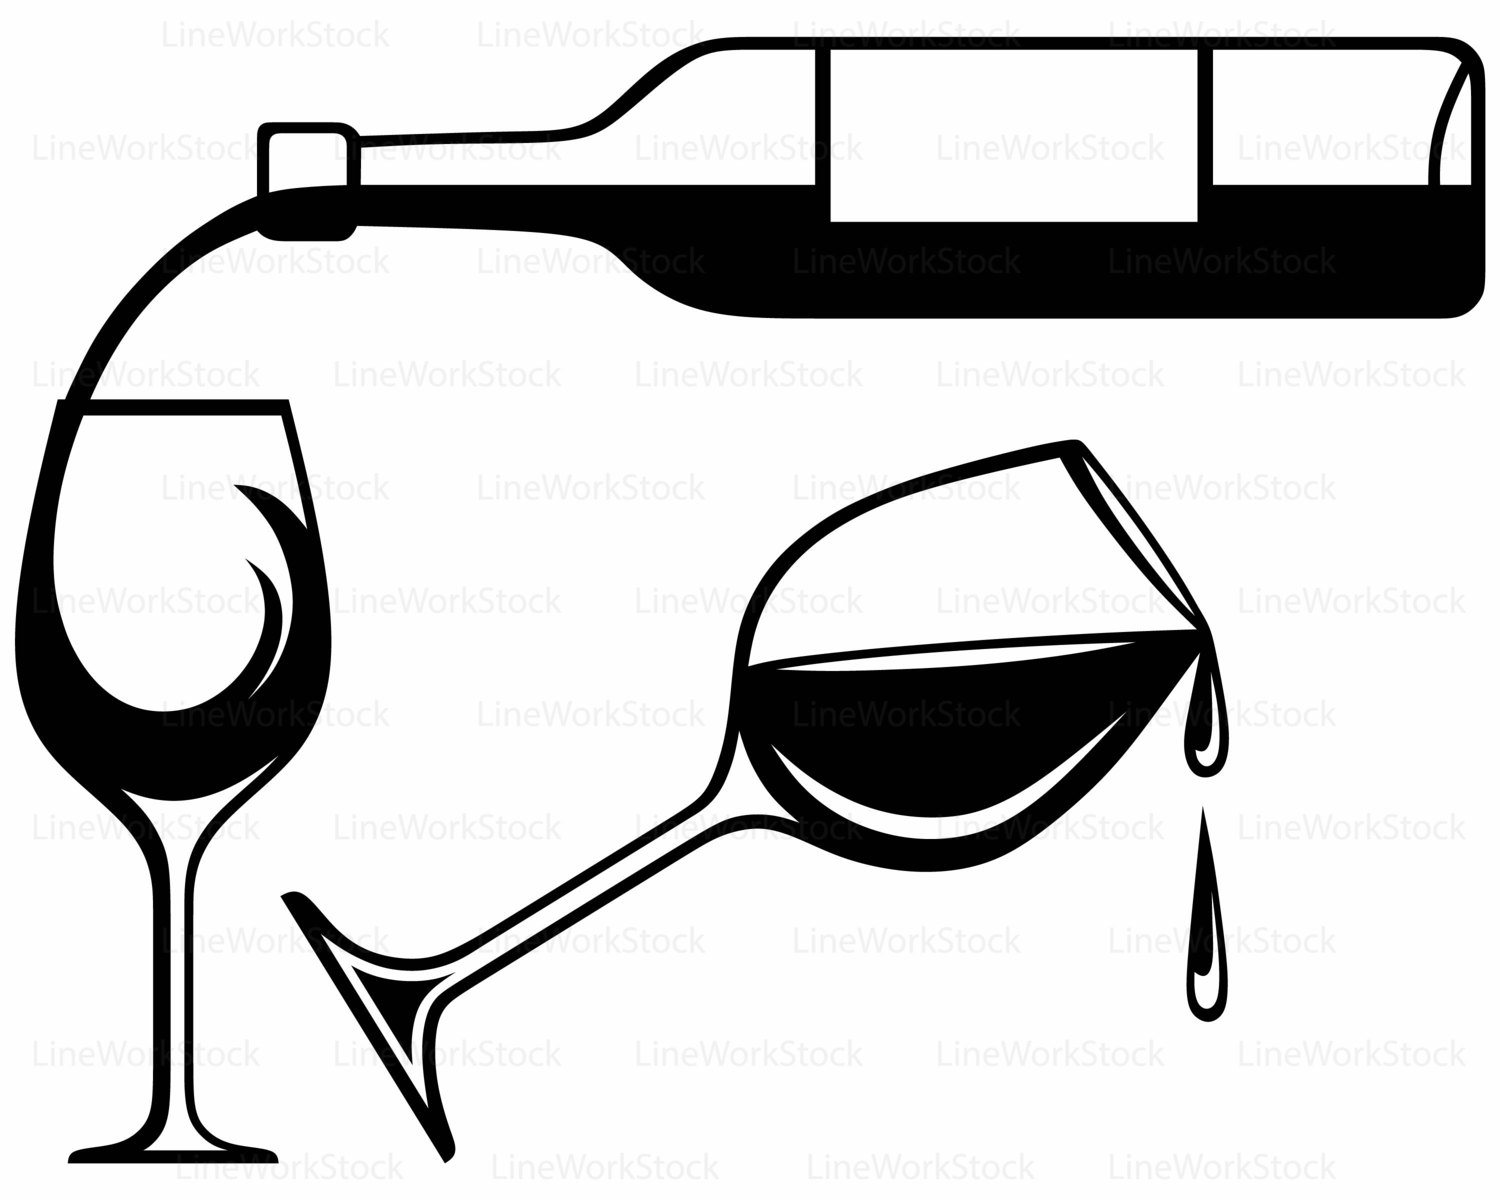 1500x1200 Wine Bottle Svgdrink Clipartalcohol Svgwine Silhouettewine